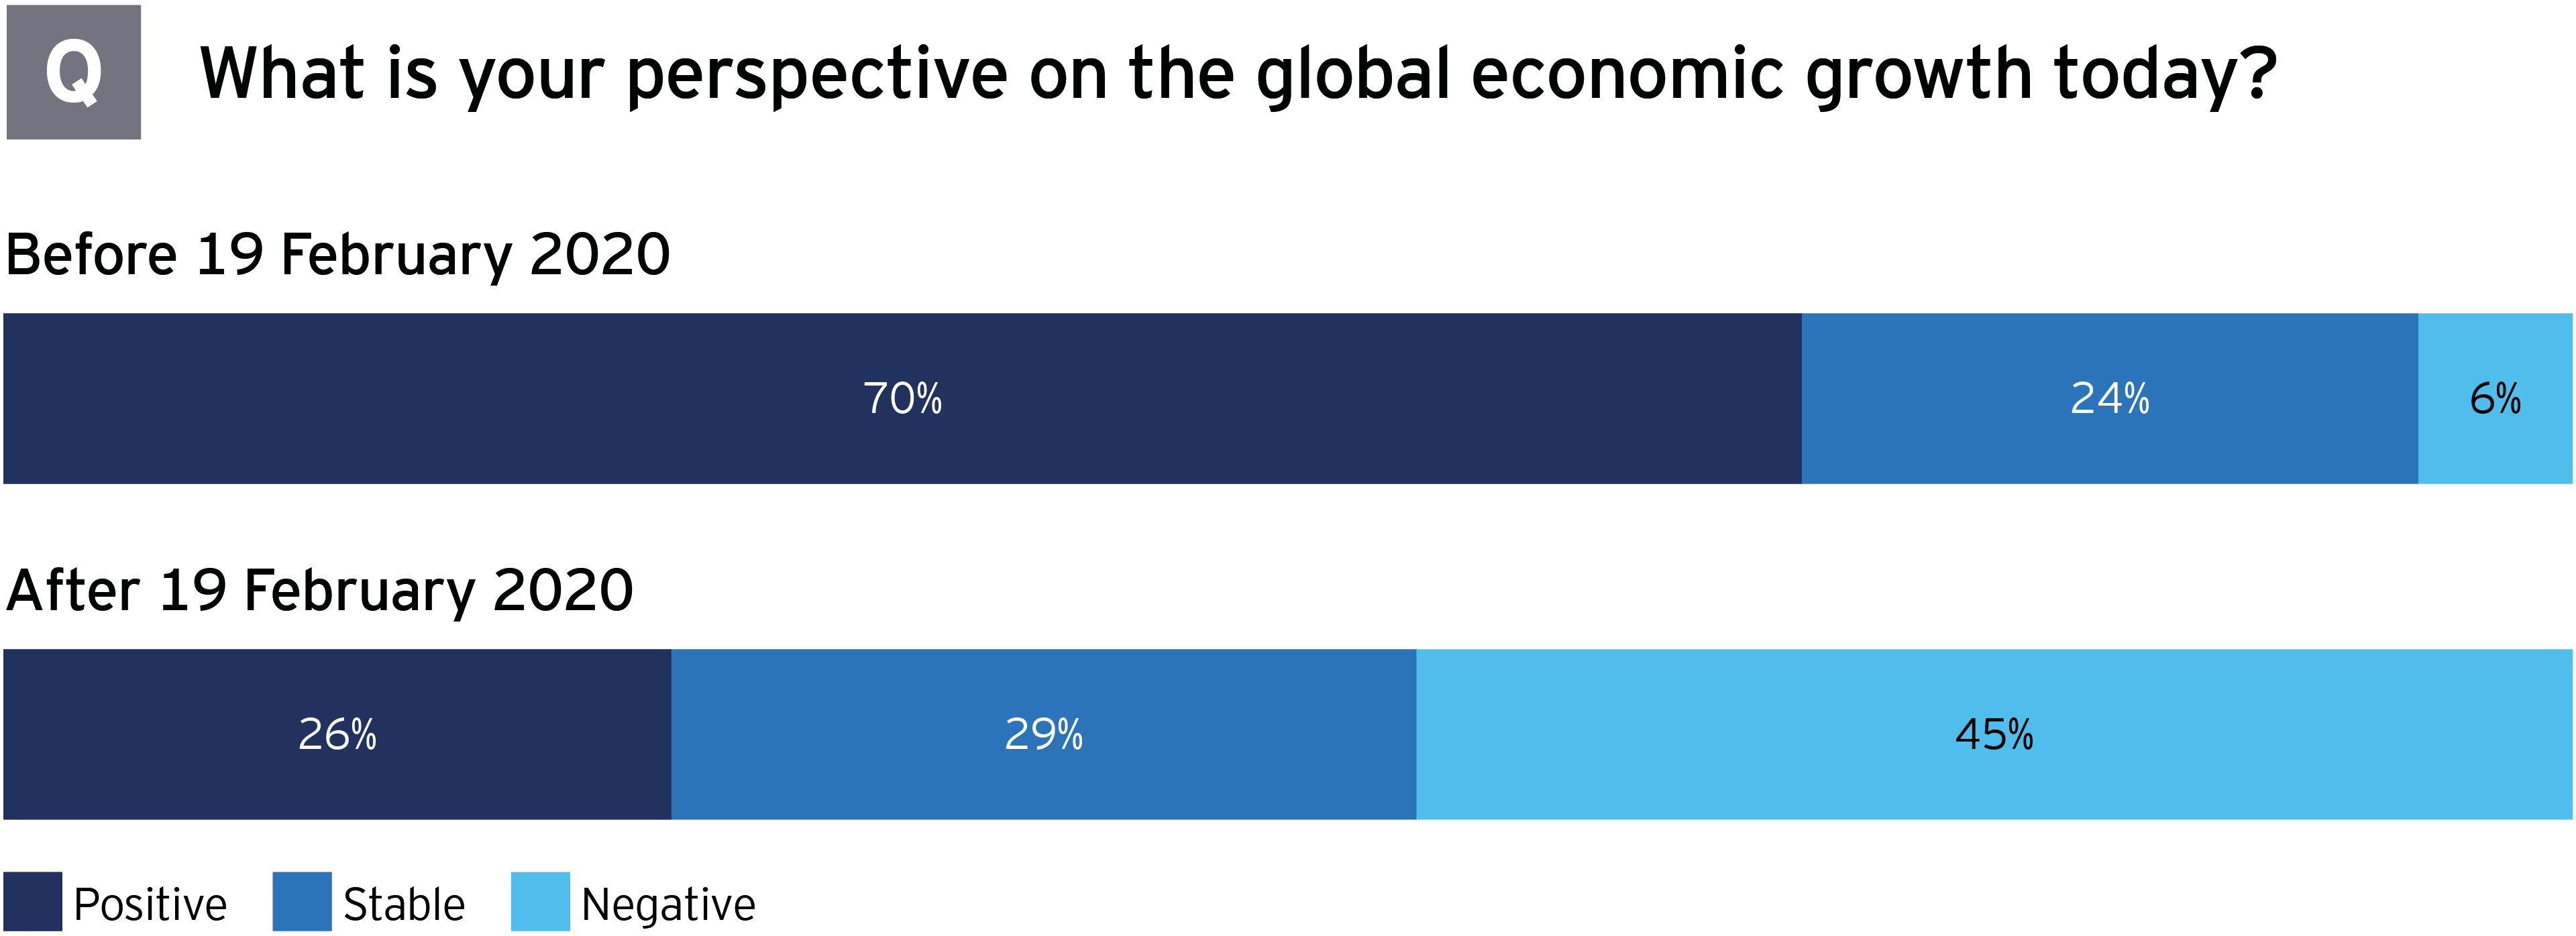 M&A survey Brazil perspective on global economic growth before and after 19 February 2020